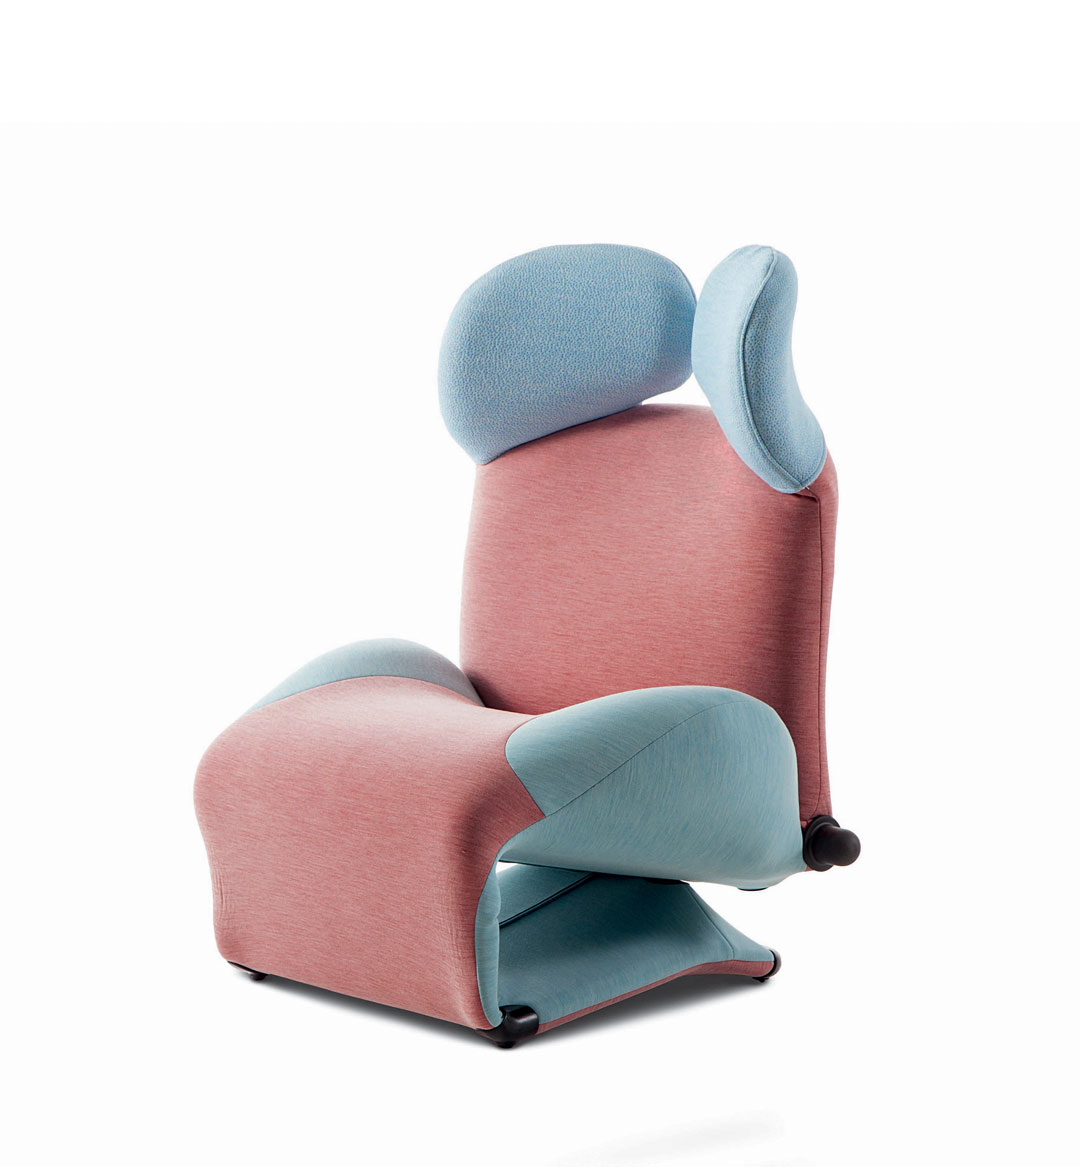 Wink Sessel Bezüge Chaiselongue Wink Von Cassina Produkttrends